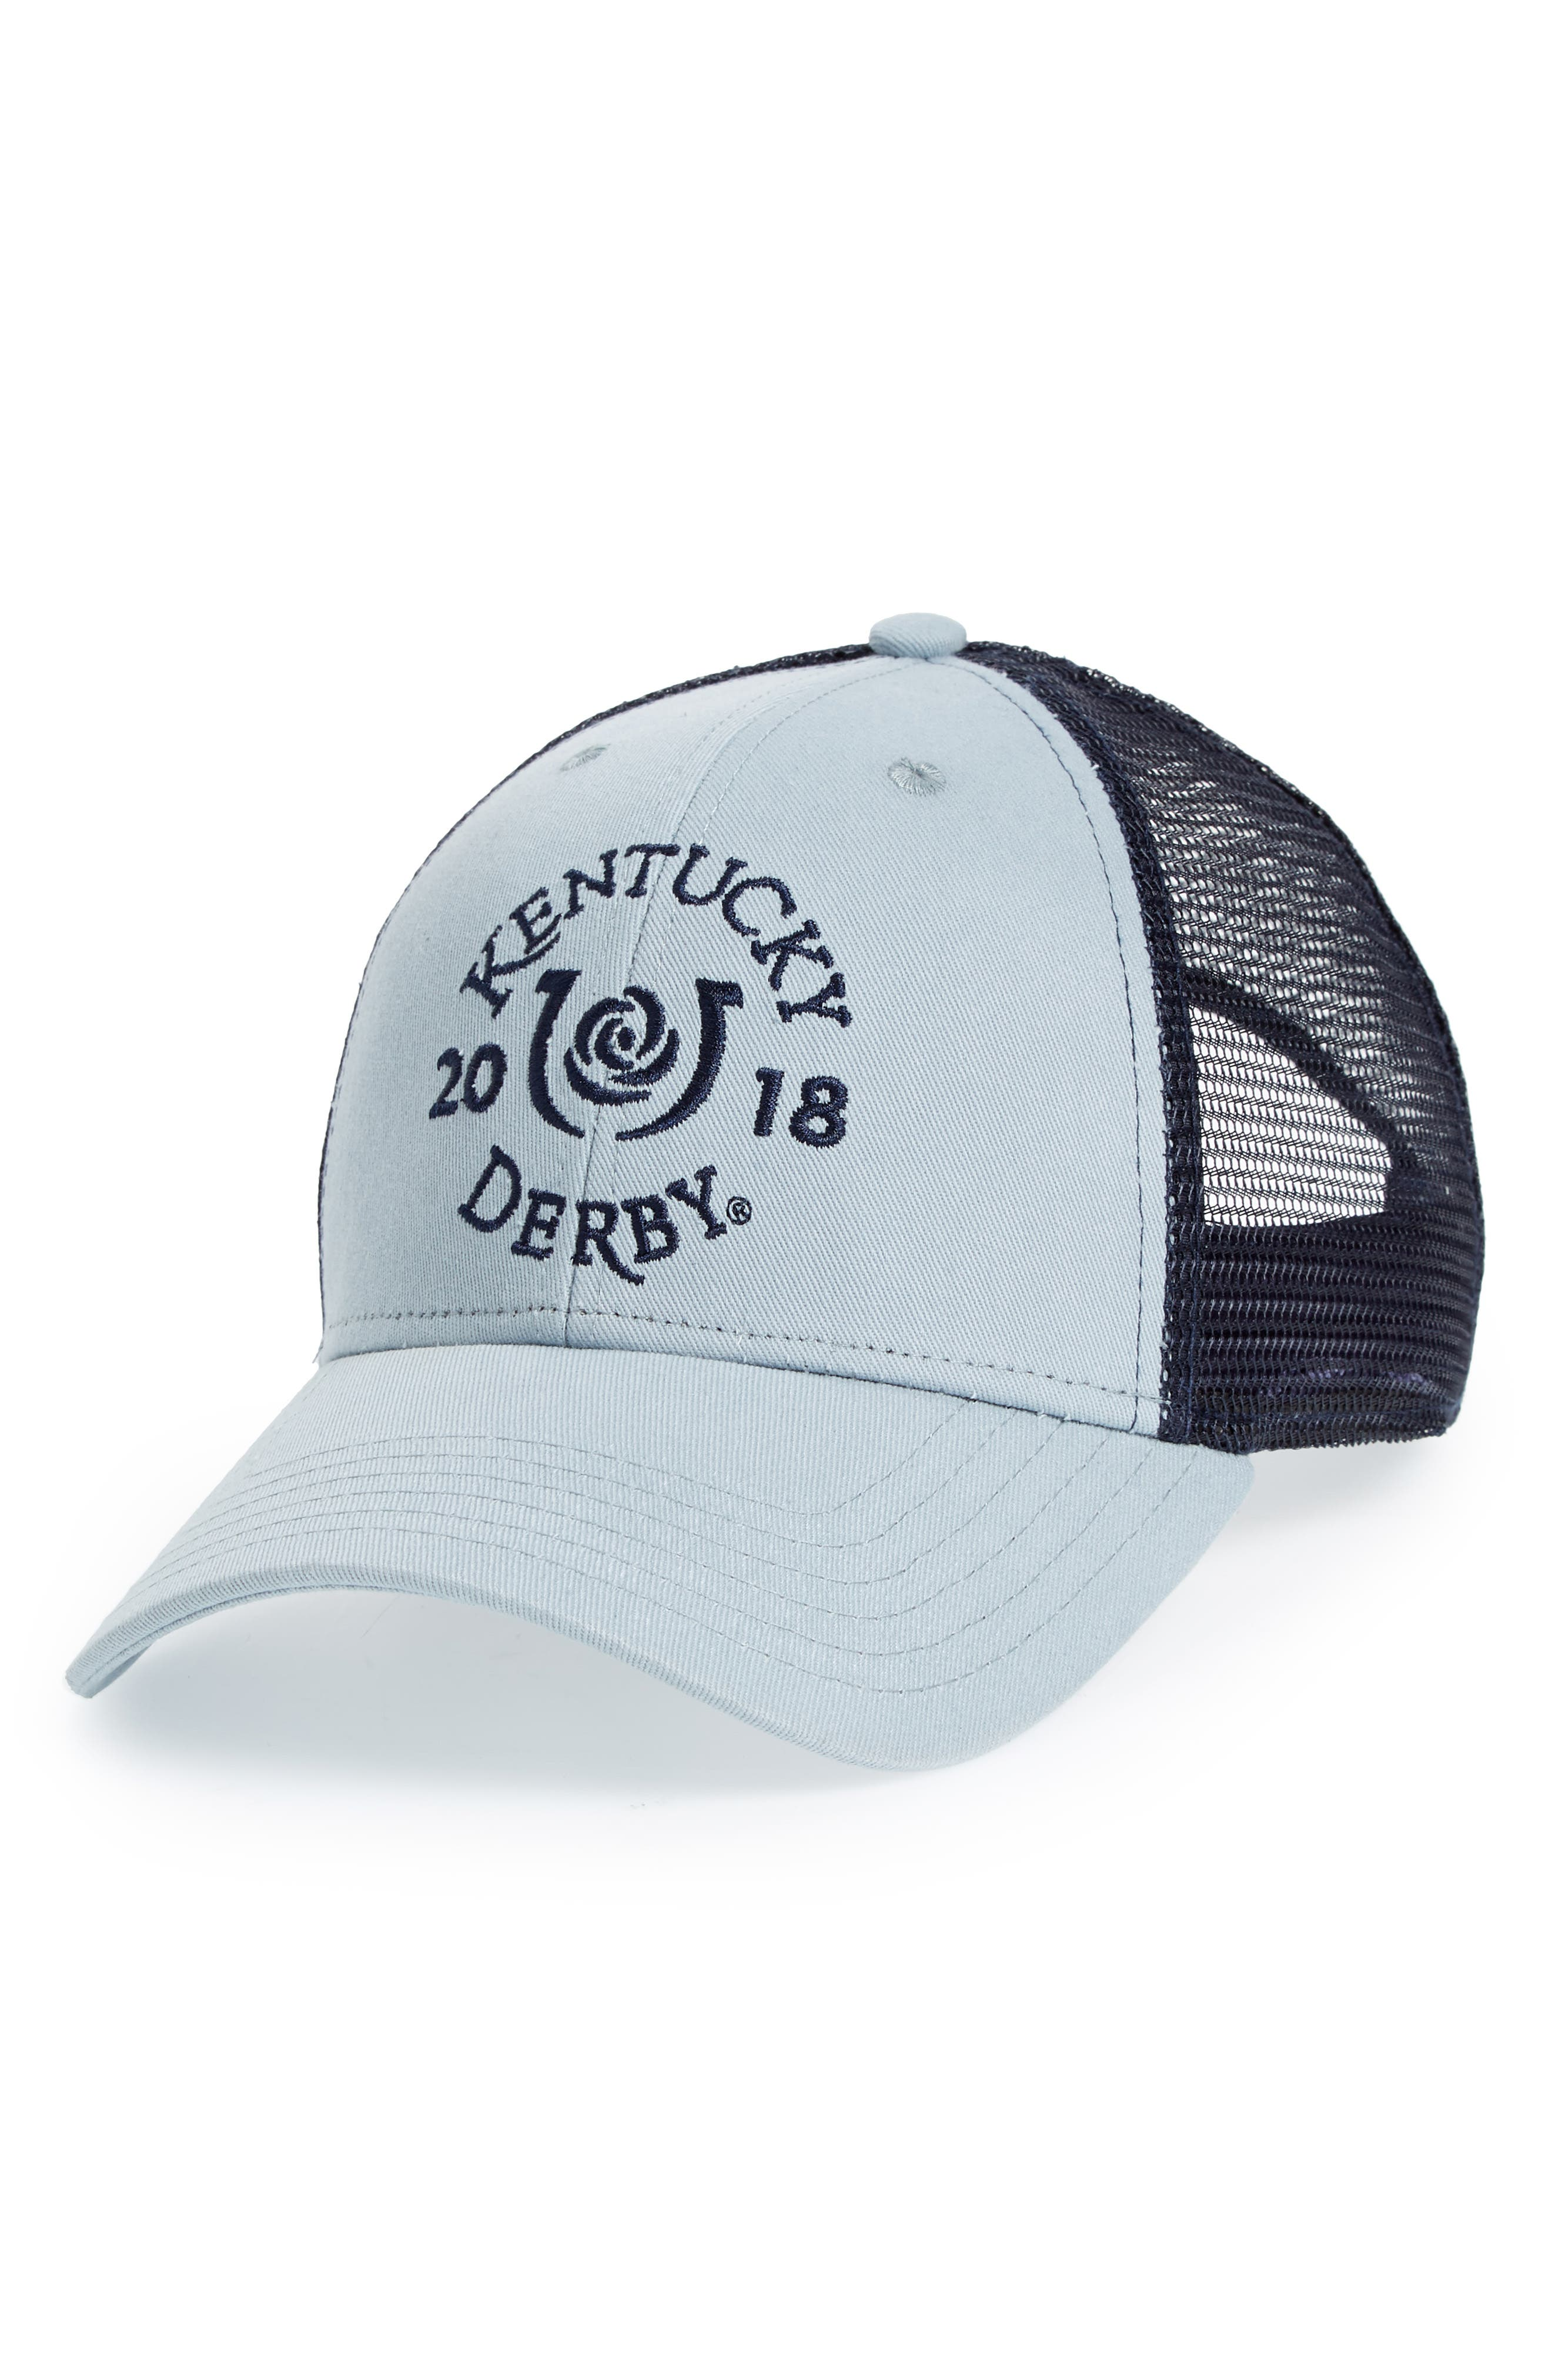 2018 Kentucky Derby<sup>®</sup> Garland of Roses Ball Cap,                         Main,                         color, Graphite